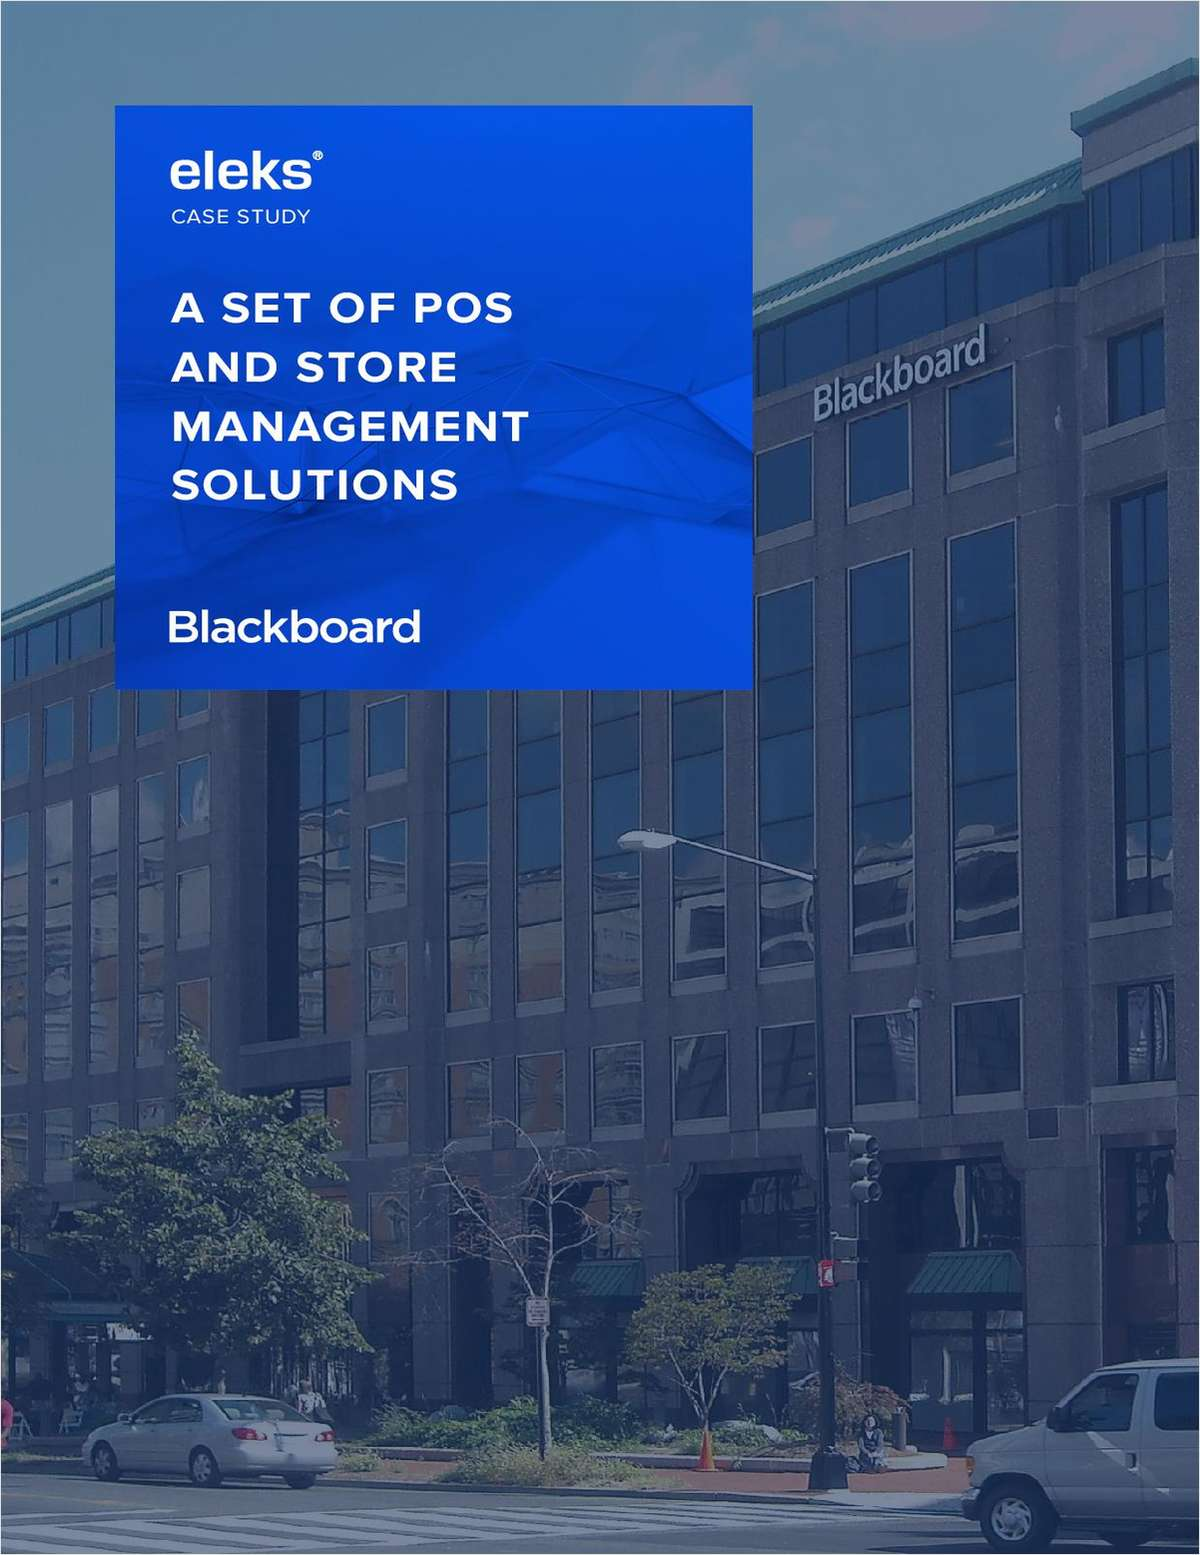 Blackboard Case Study: Delivering a Set of POS and Store Management Software Solutions with Rapid Team Scaling